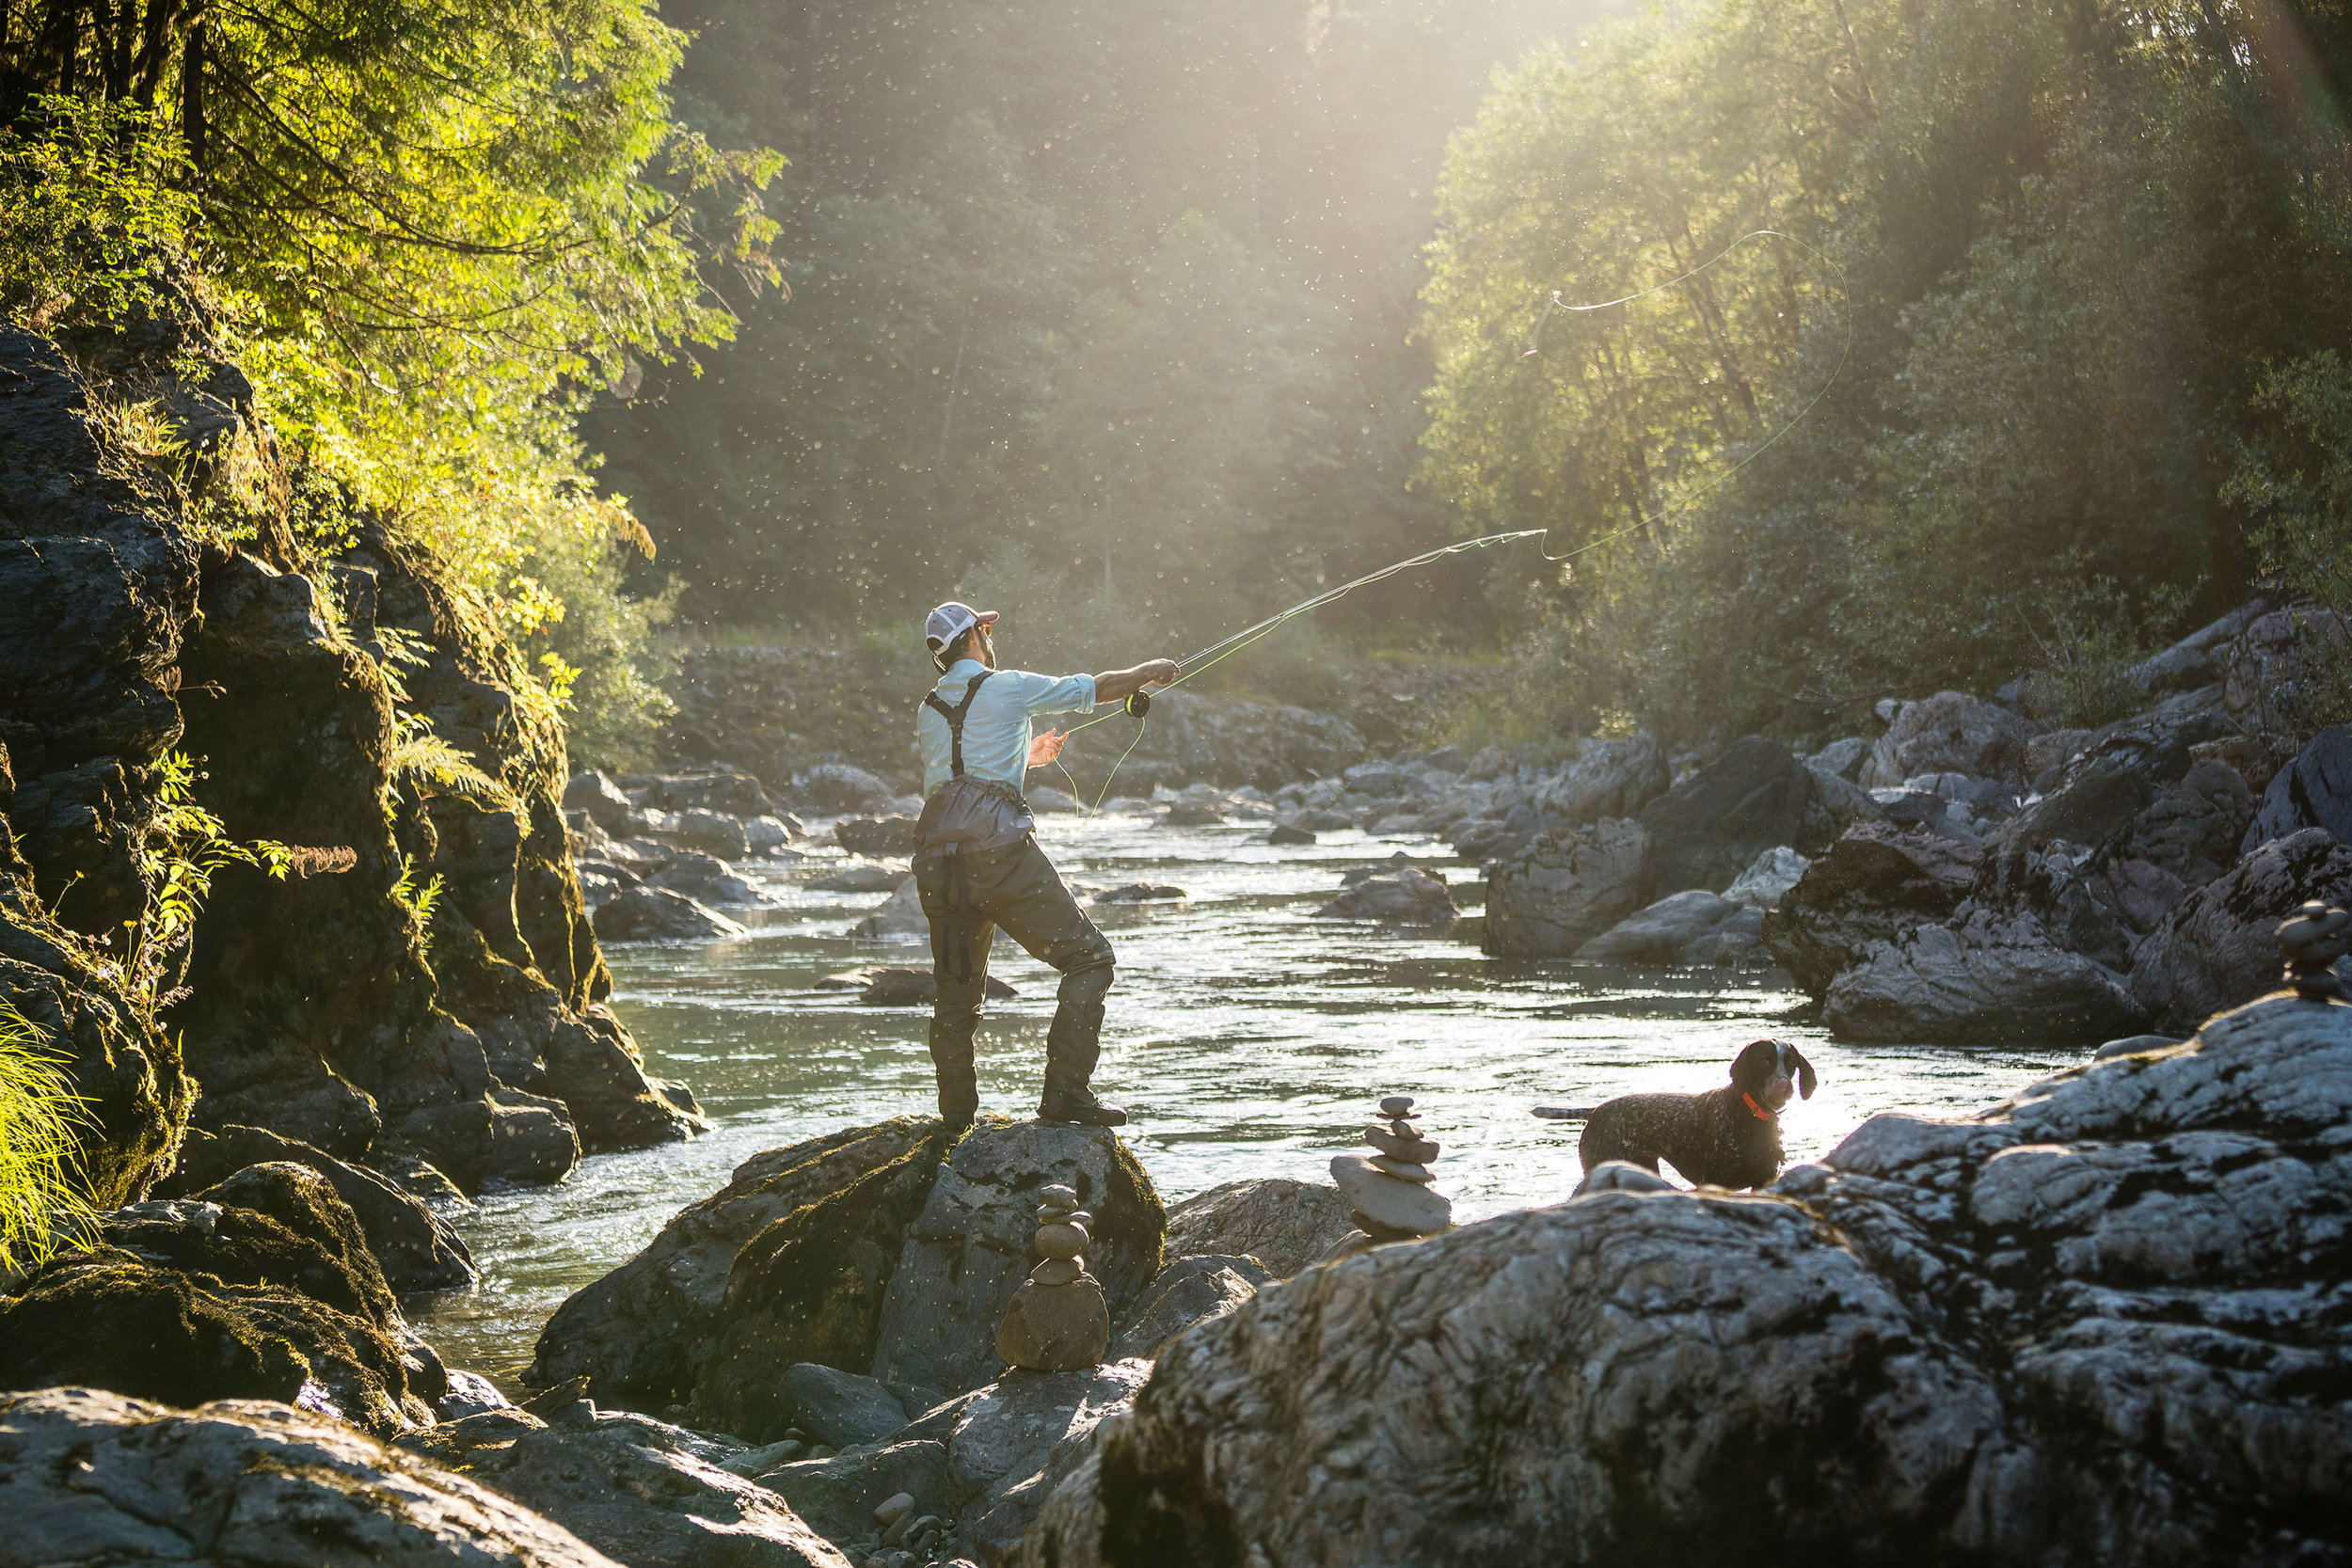 Lifestyle: Todd Penke fly fishing on the South Fork of the Stillaguamish River, Central Cascades, Washington